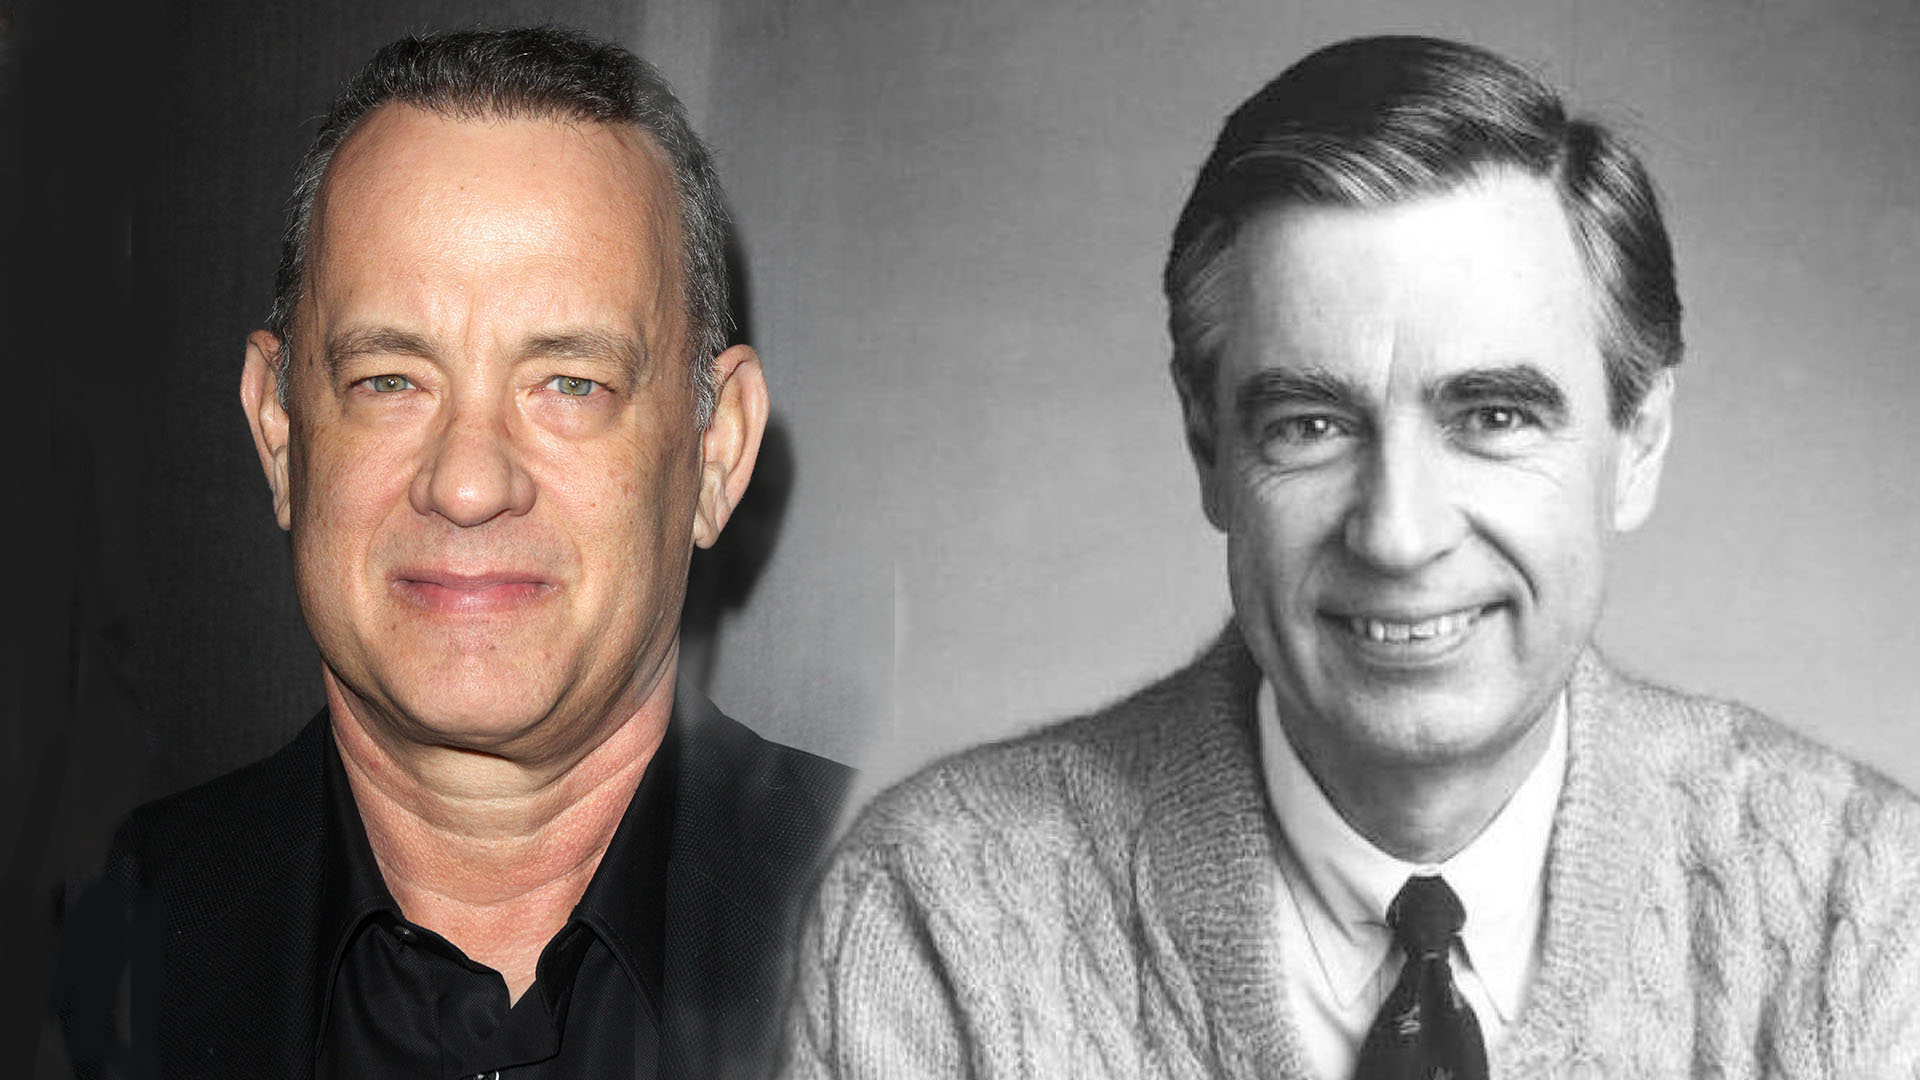 TOM HANKS TO PLAY MR. ROGERS IN 'YOU ARE MY FRIEND' BIOPIC